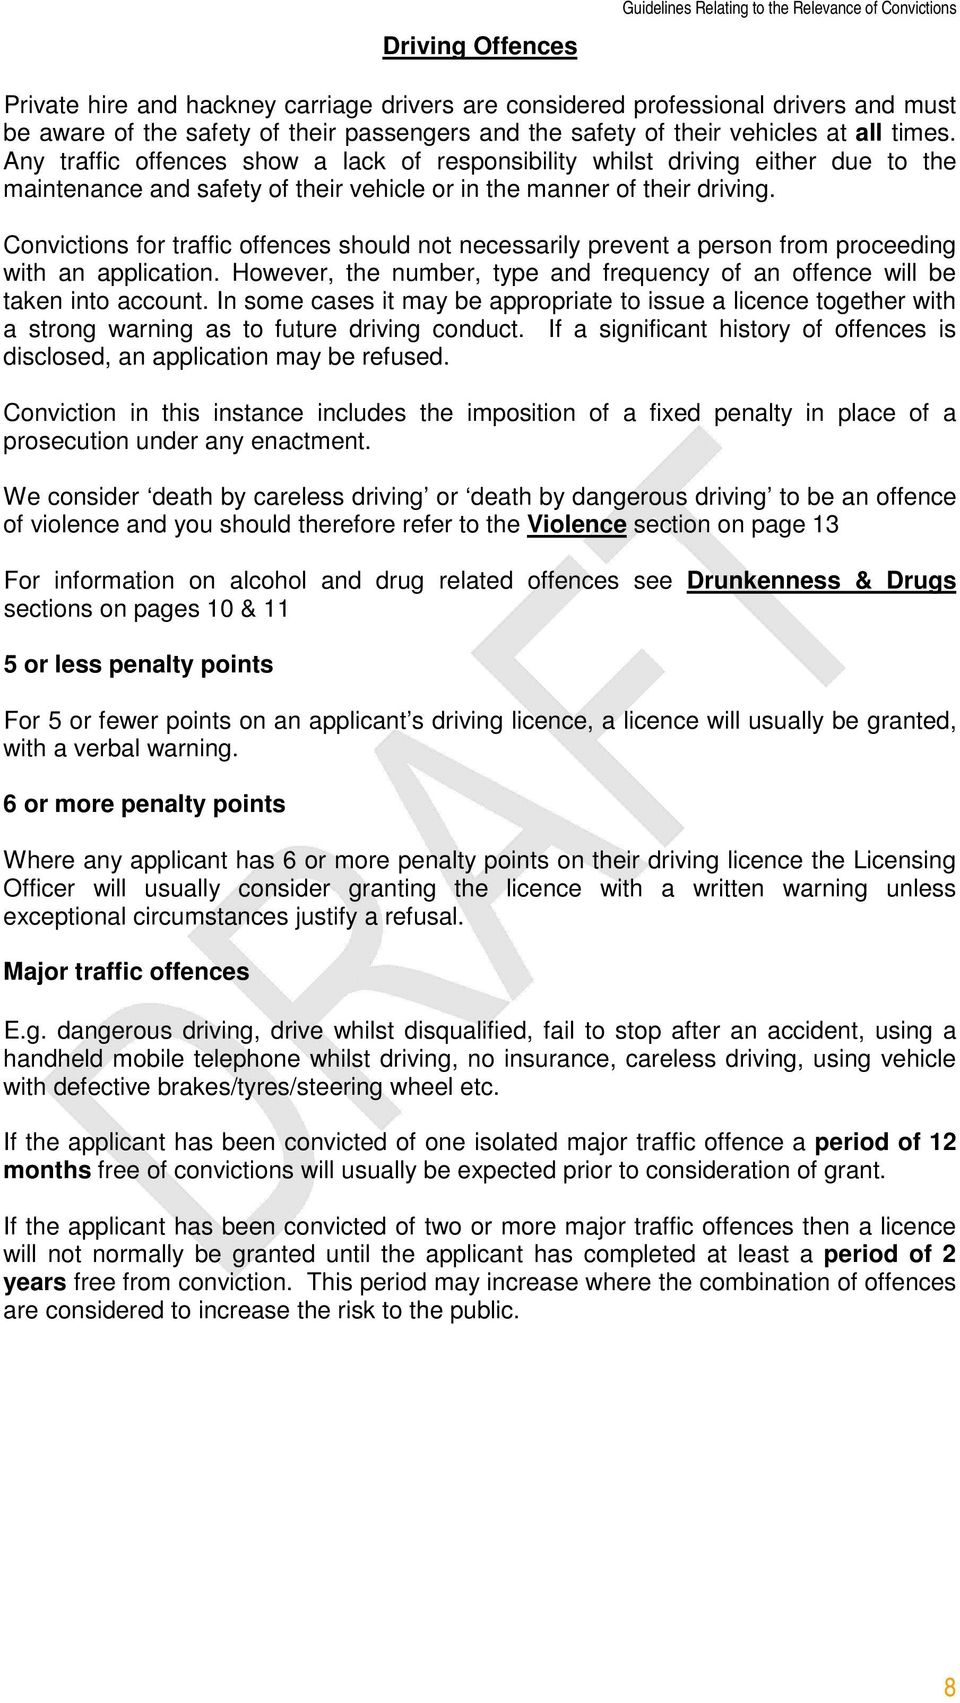 Any traffic offences show a lack of responsibility whilst driving either due to the maintenance and safety of their vehicle or in the manner of their driving.